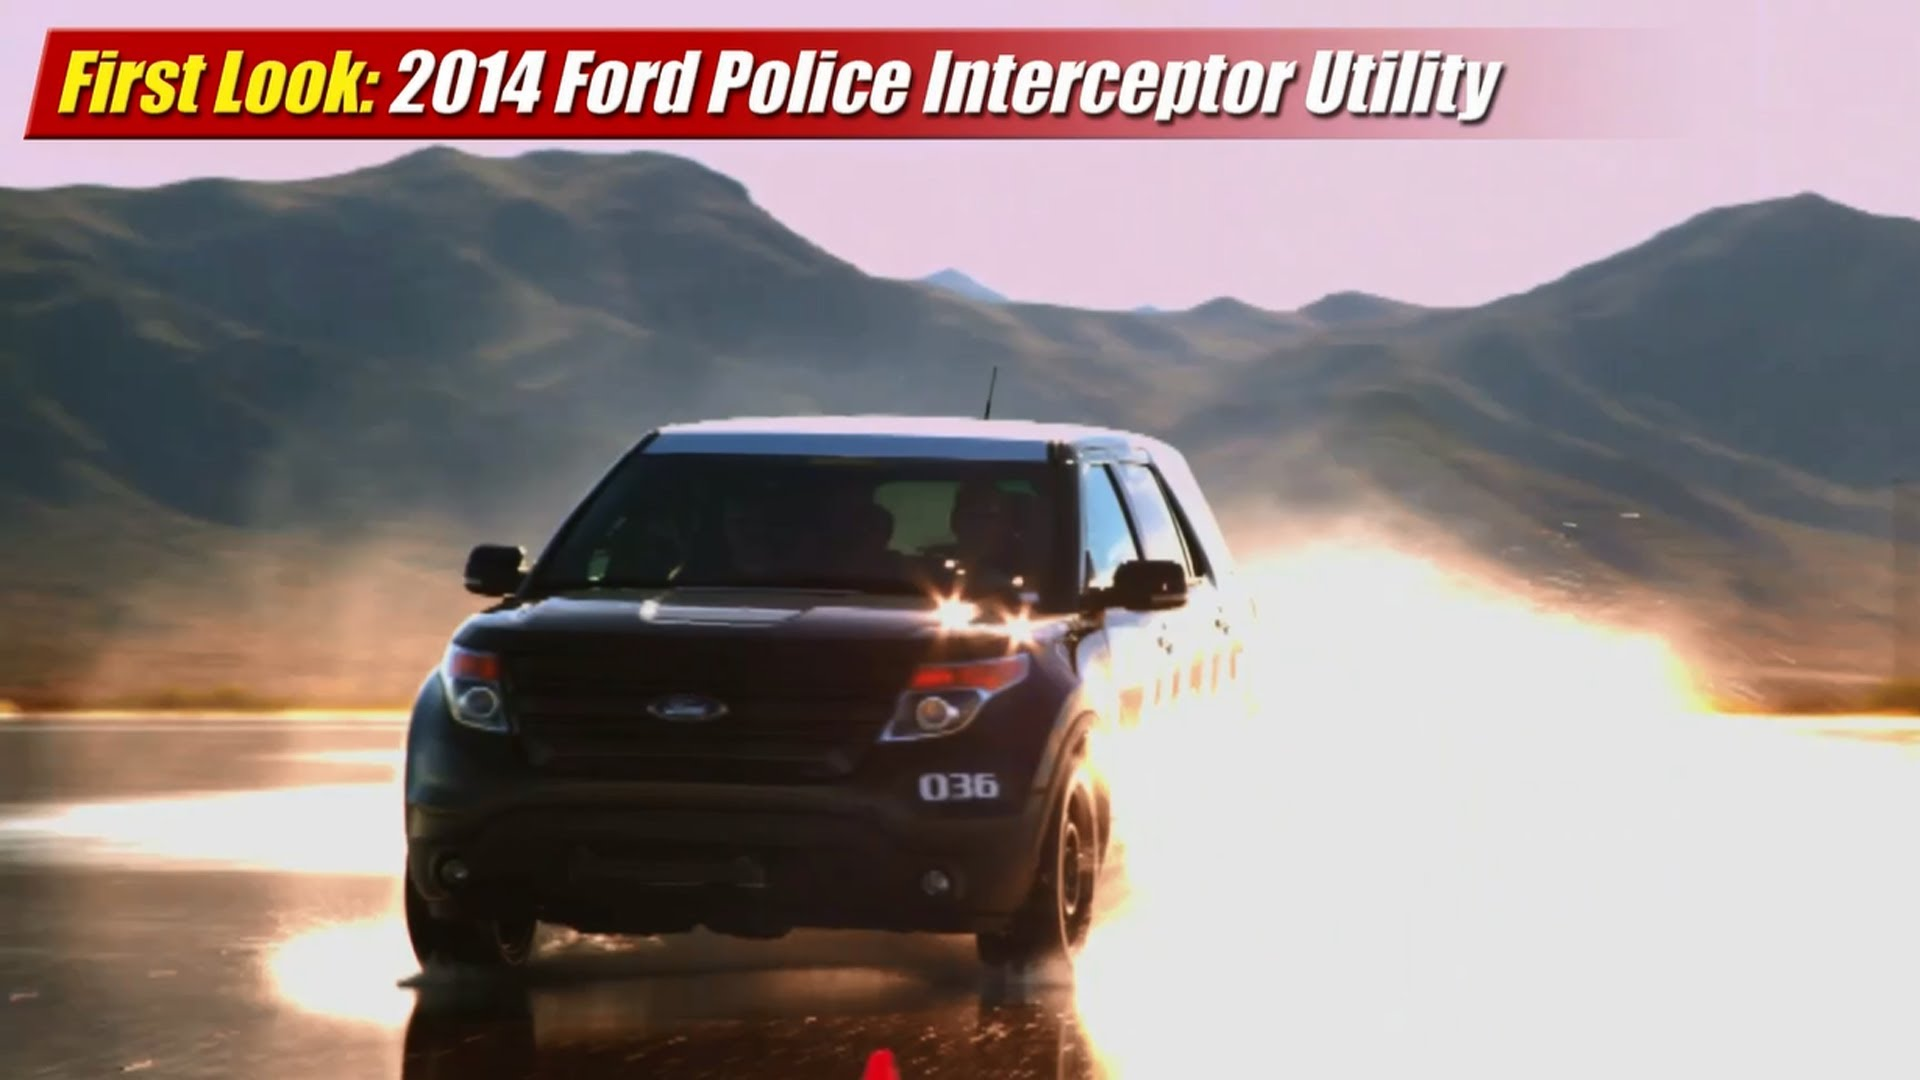 First Look 2014 Ford Police Interceptor Utility With